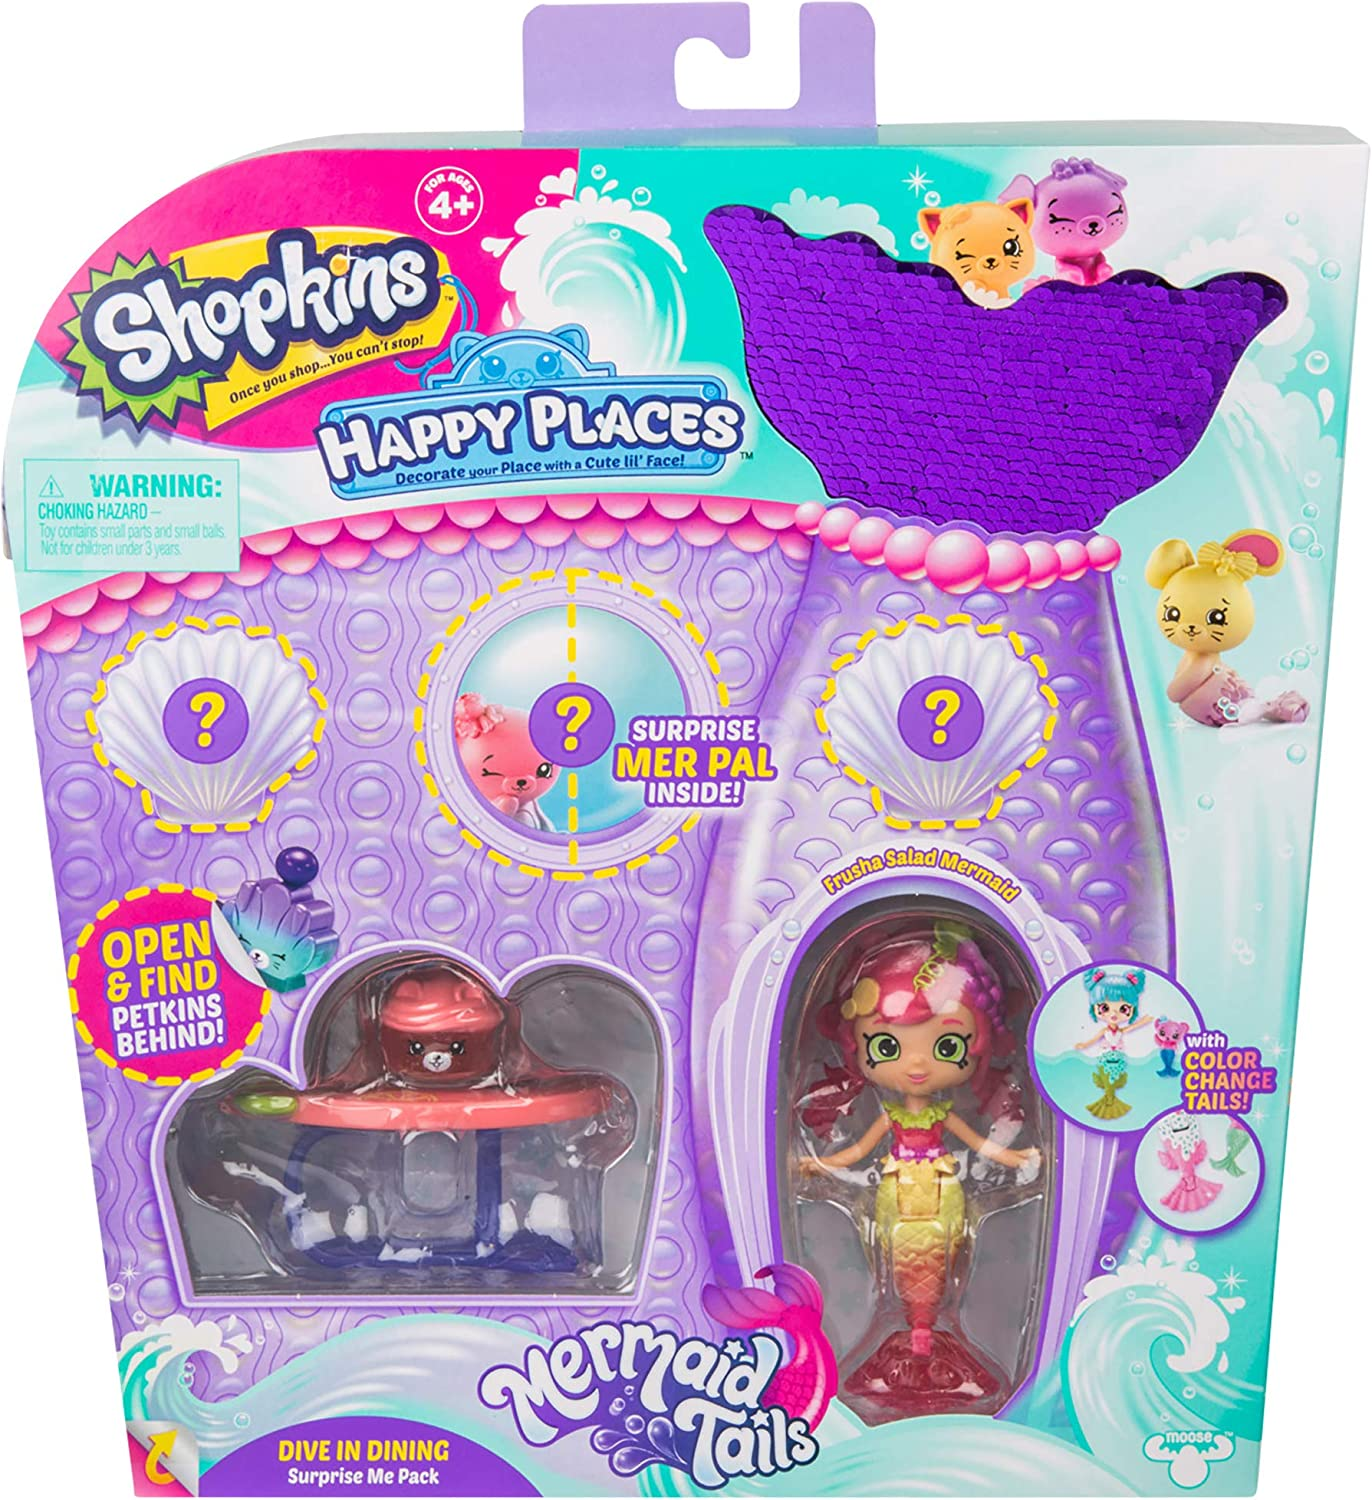 Happy Places Shopkins S6 Surprise Me Pack - Dive in Dining